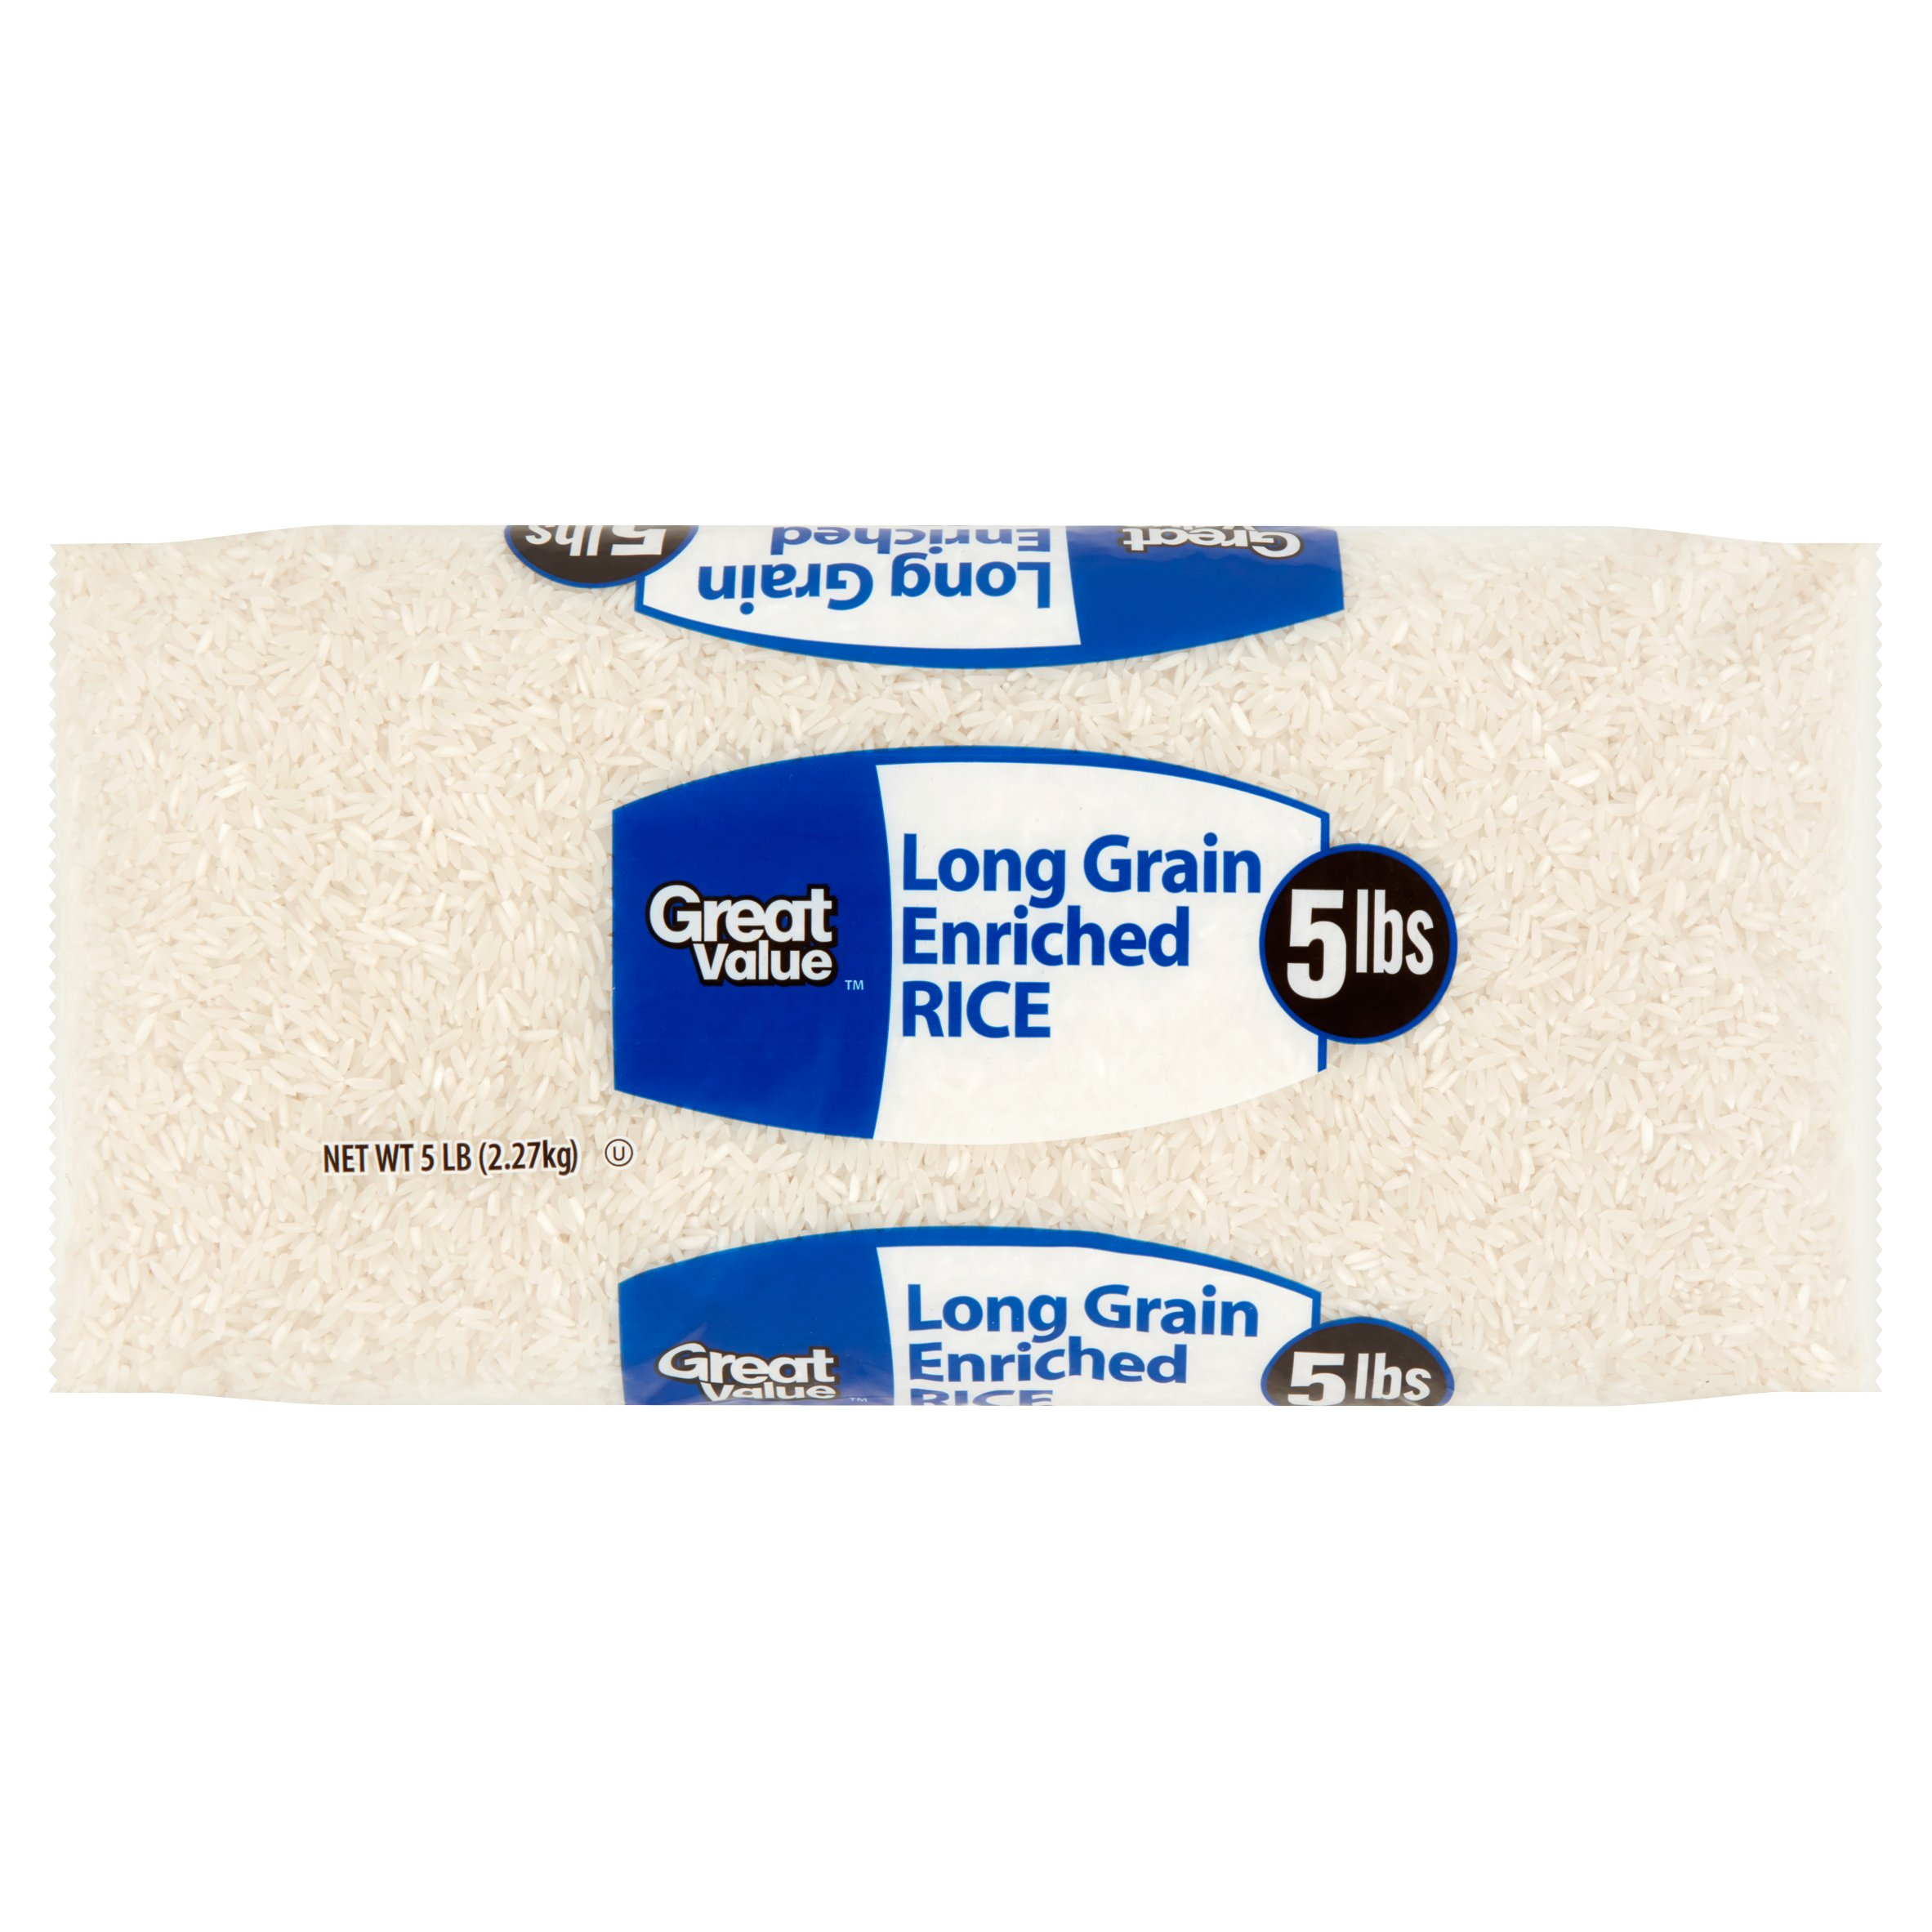 Great Value Long Grain Enriched Rice, 5 lb by Wal-Mart Stores, Inc.